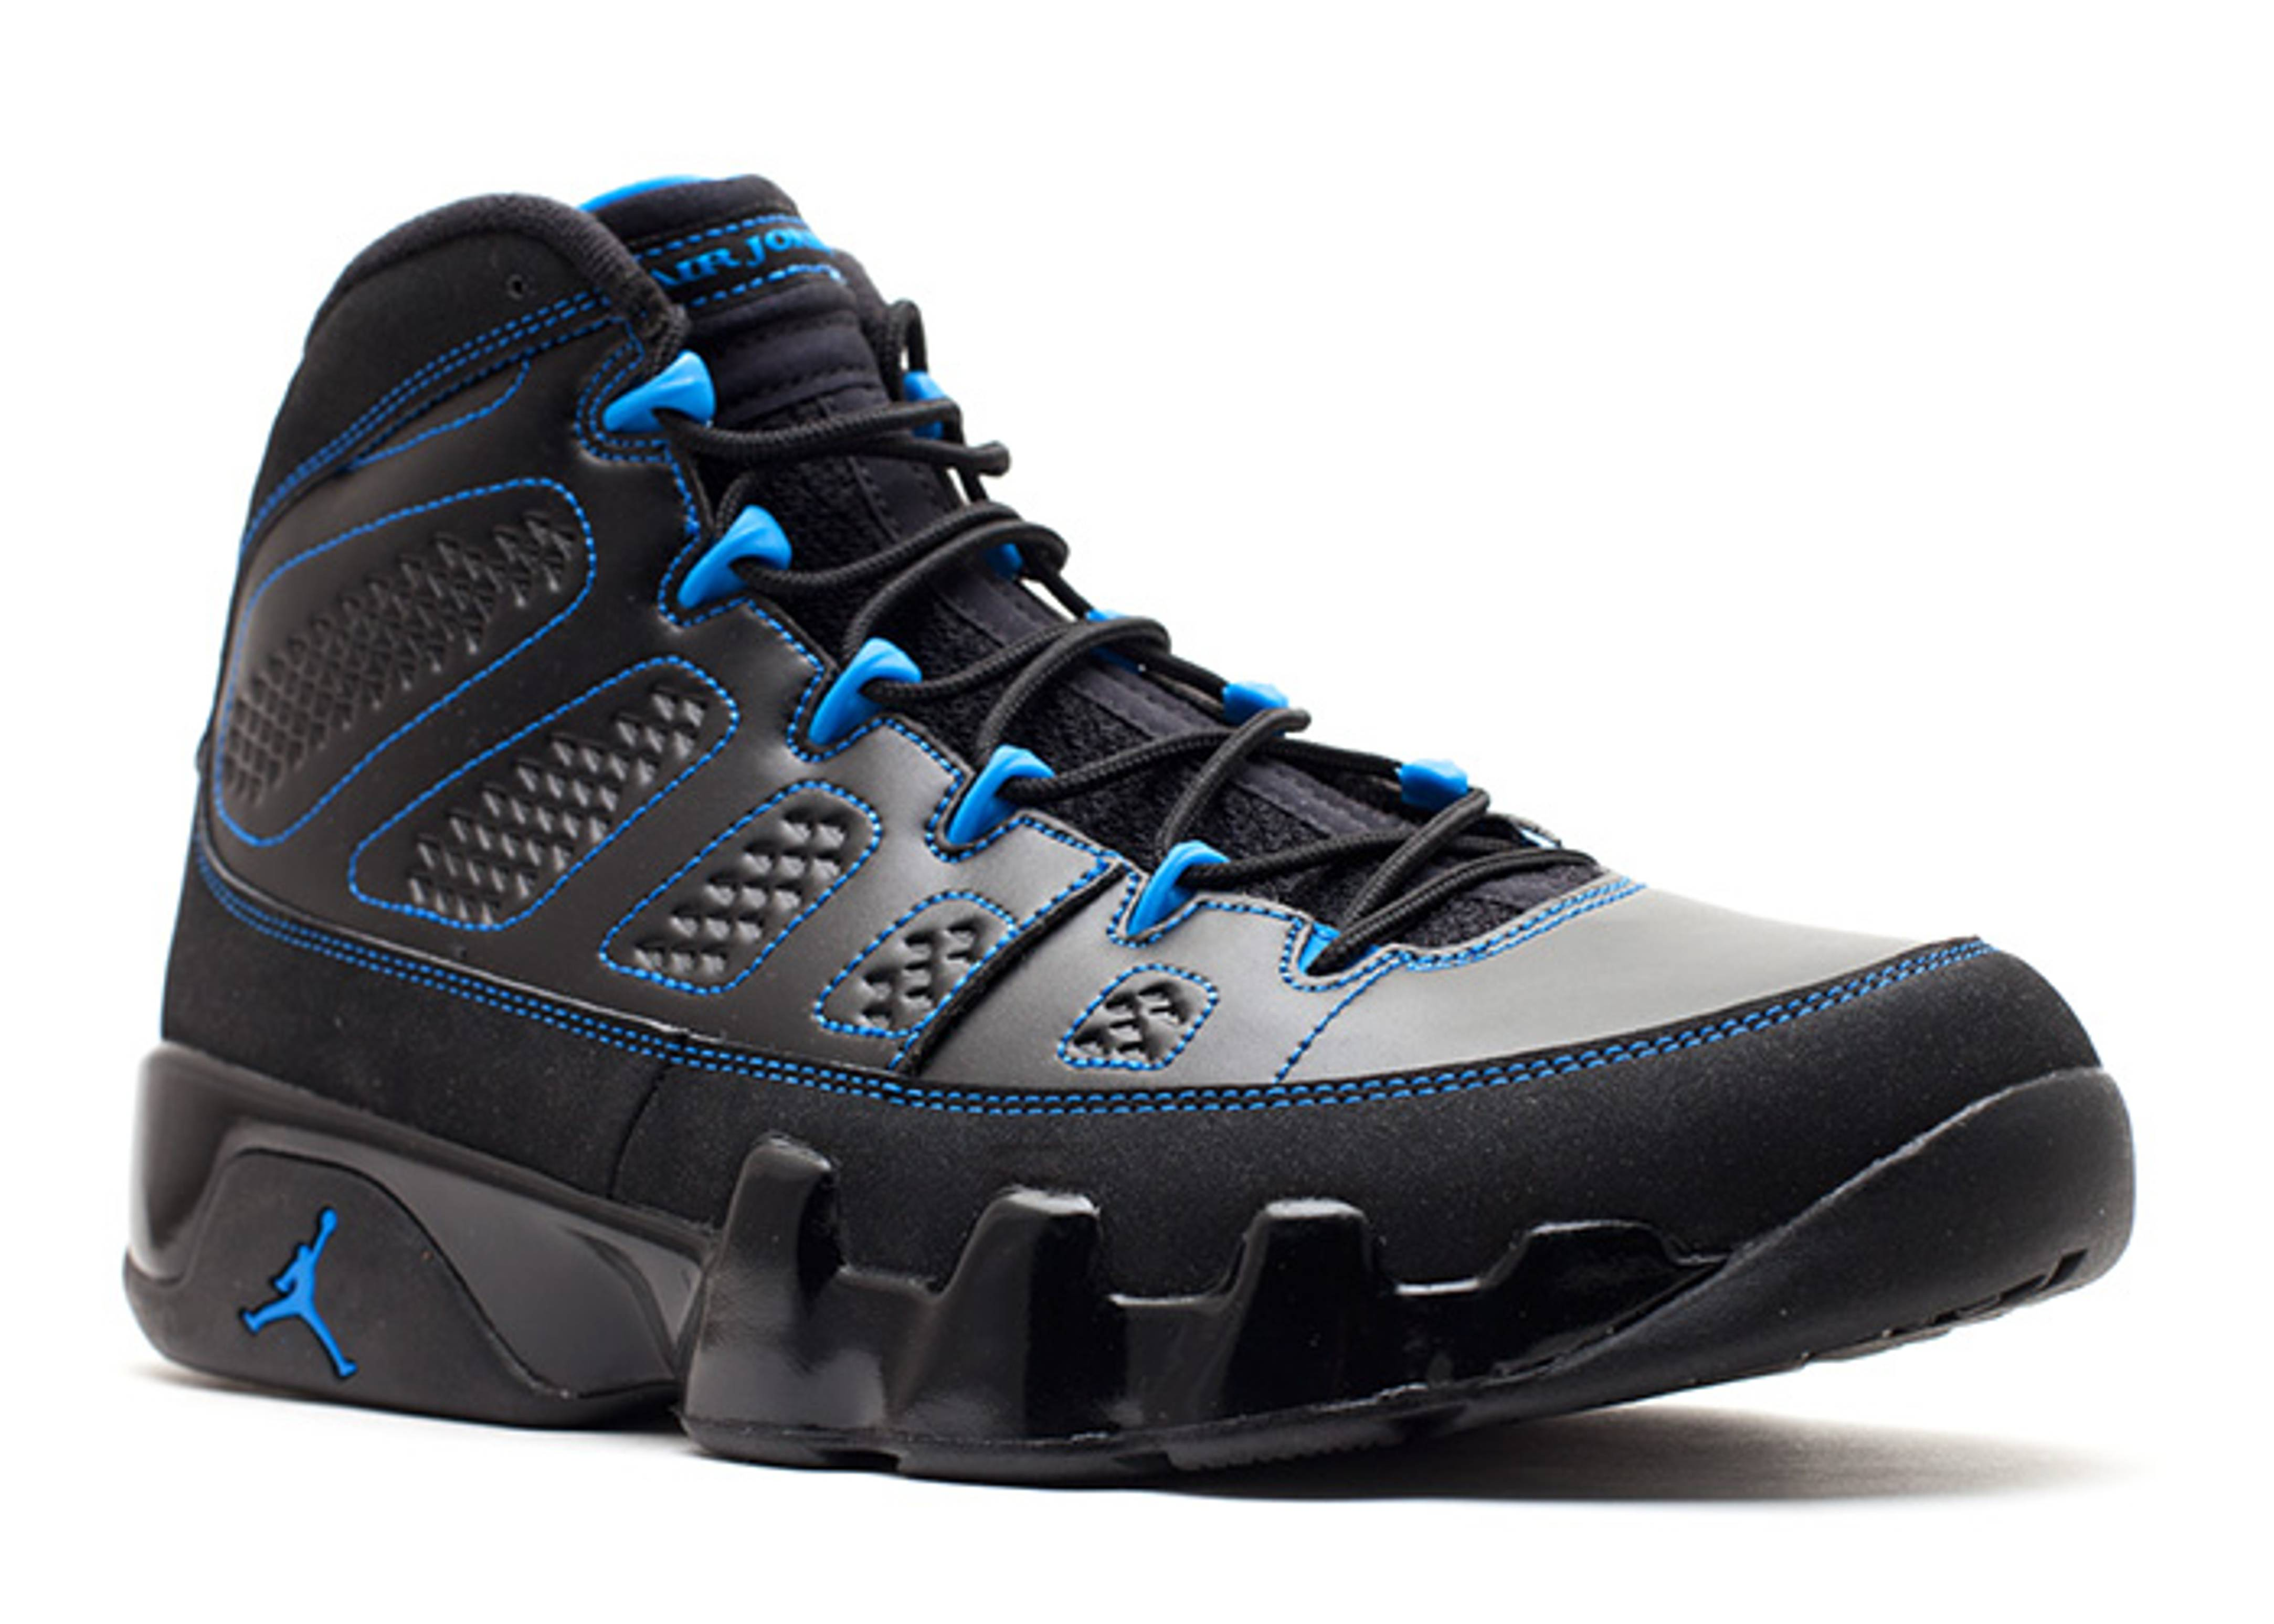 """Air Jordan 9s for sale. Air Jordan 9 Retro """"Black Bottom"""" Multilingual. The shoe being released was plain and sturdy and was the first model that Michael did not wear in an NBA seasonal game (due to the retirement). The sole had lots of details and a large 23 was stitched at the back of the shoe."""